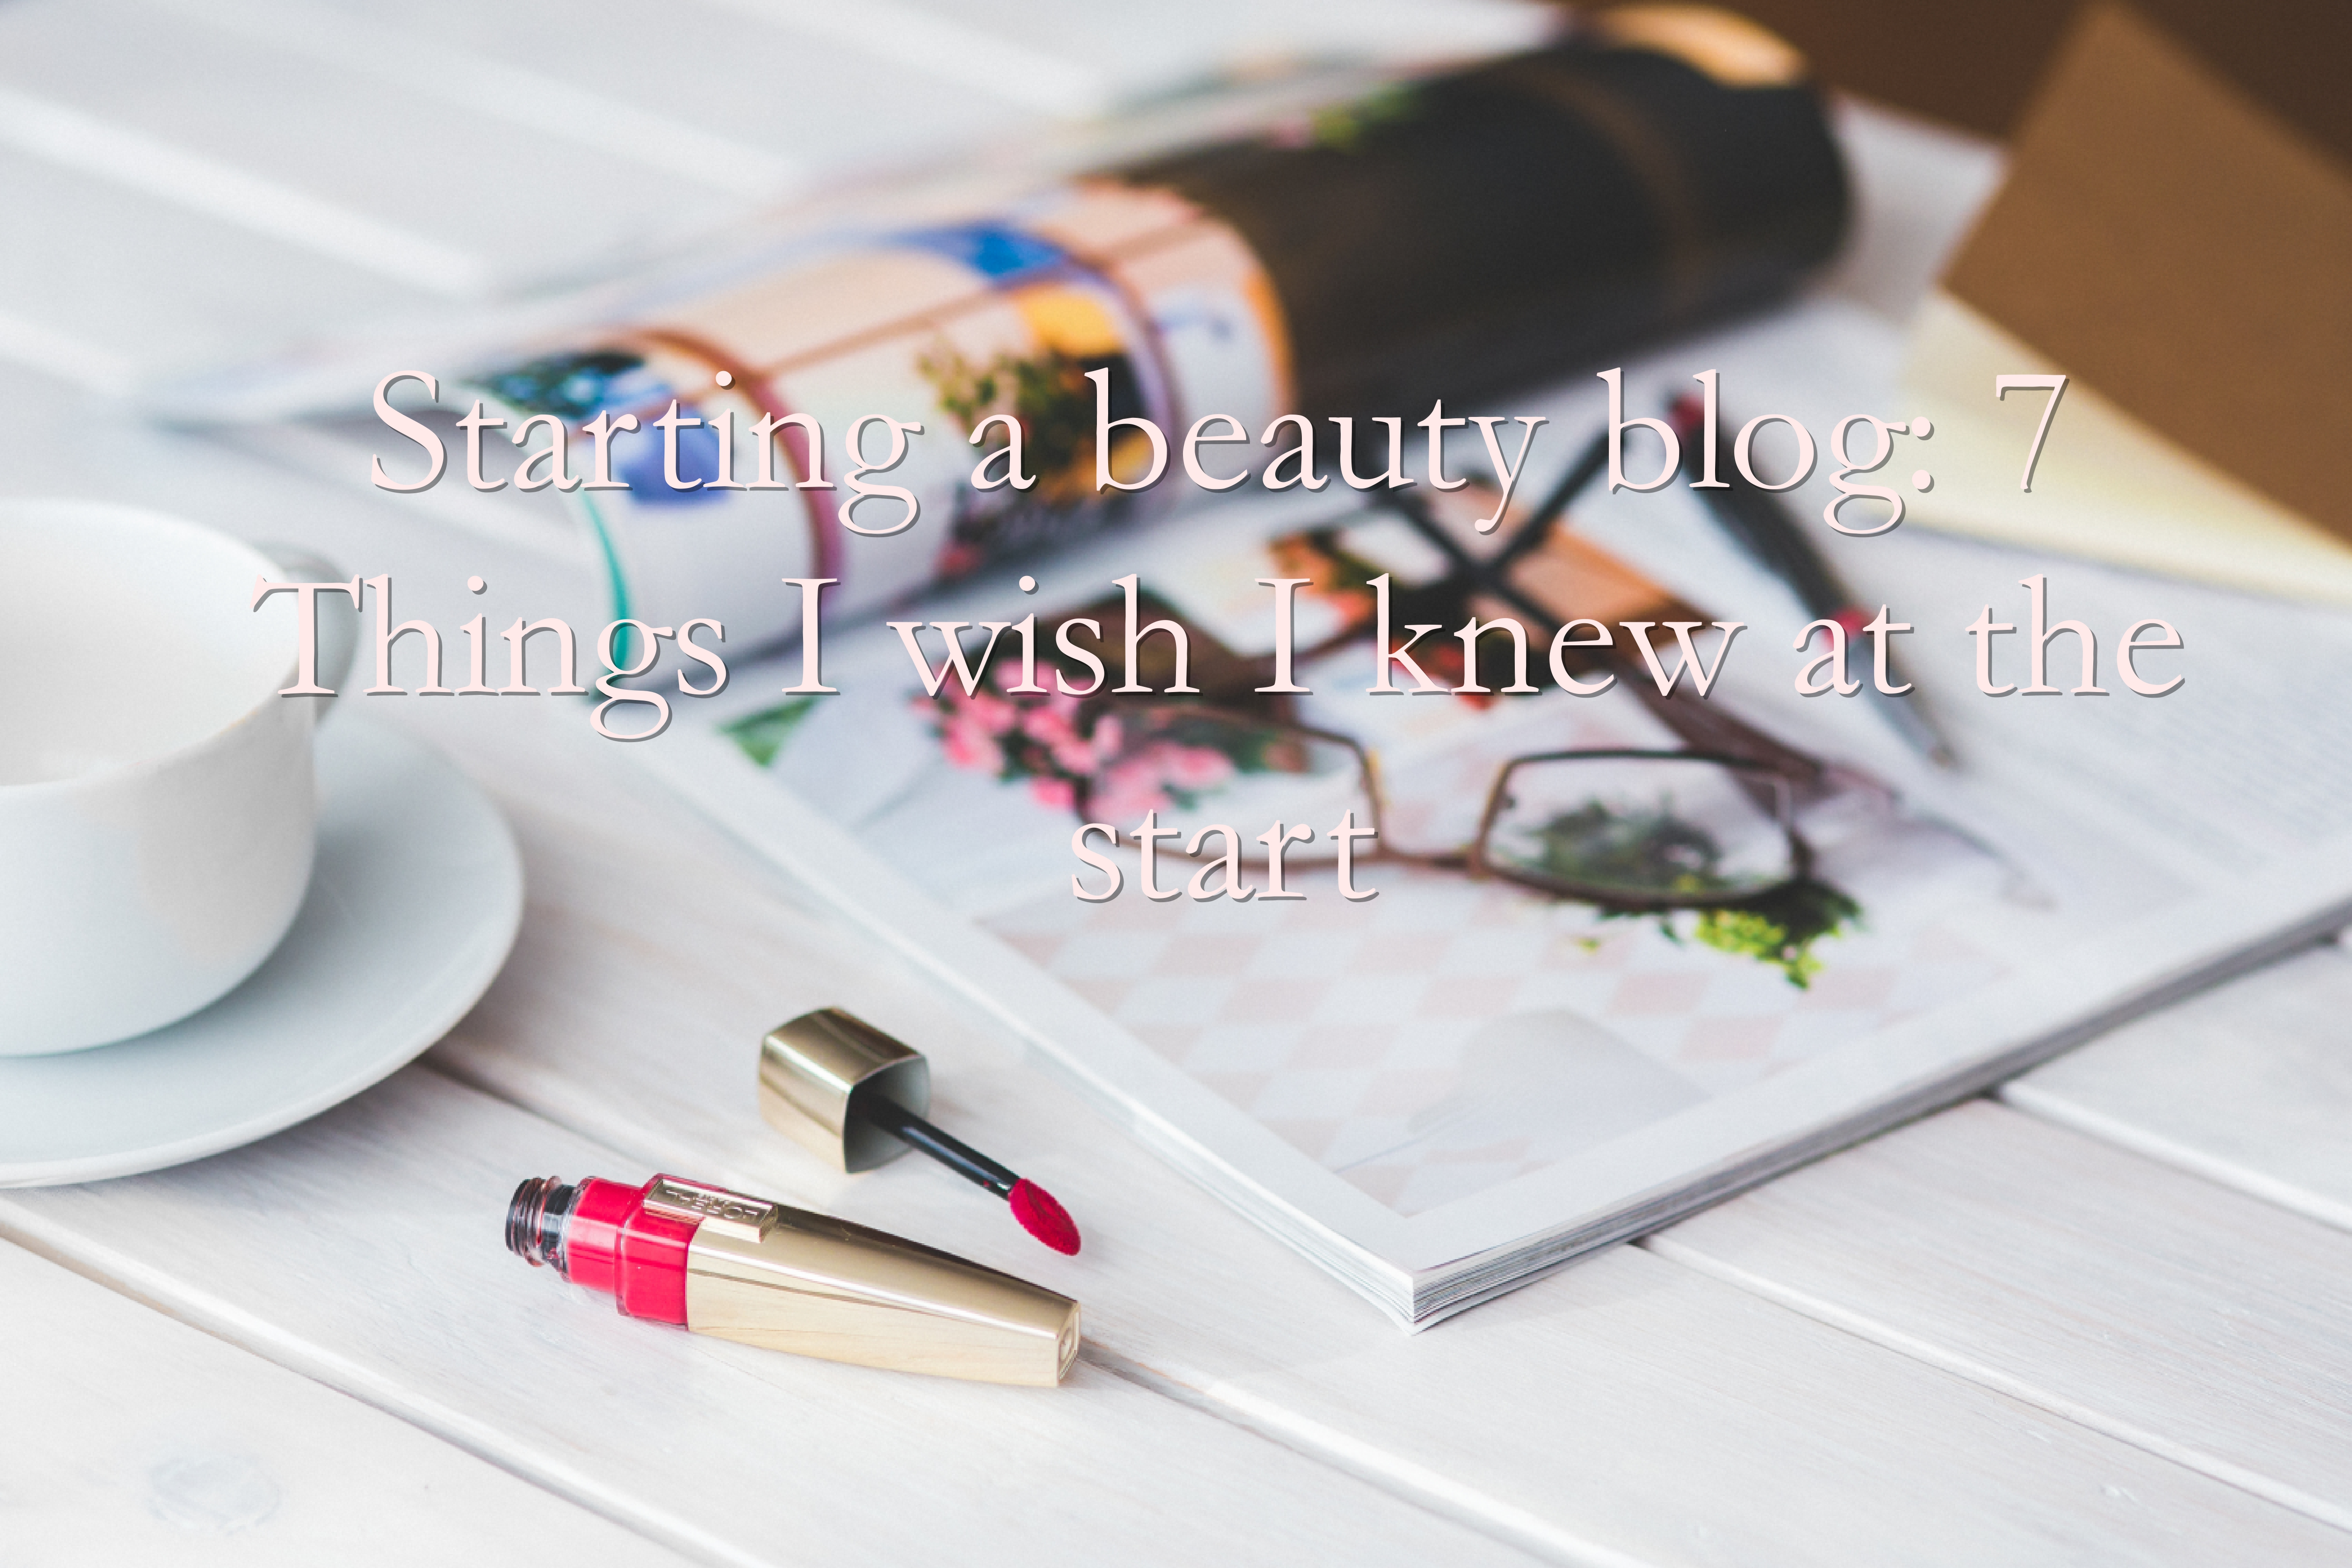 Starting a beauty blog: Things I wish I knew